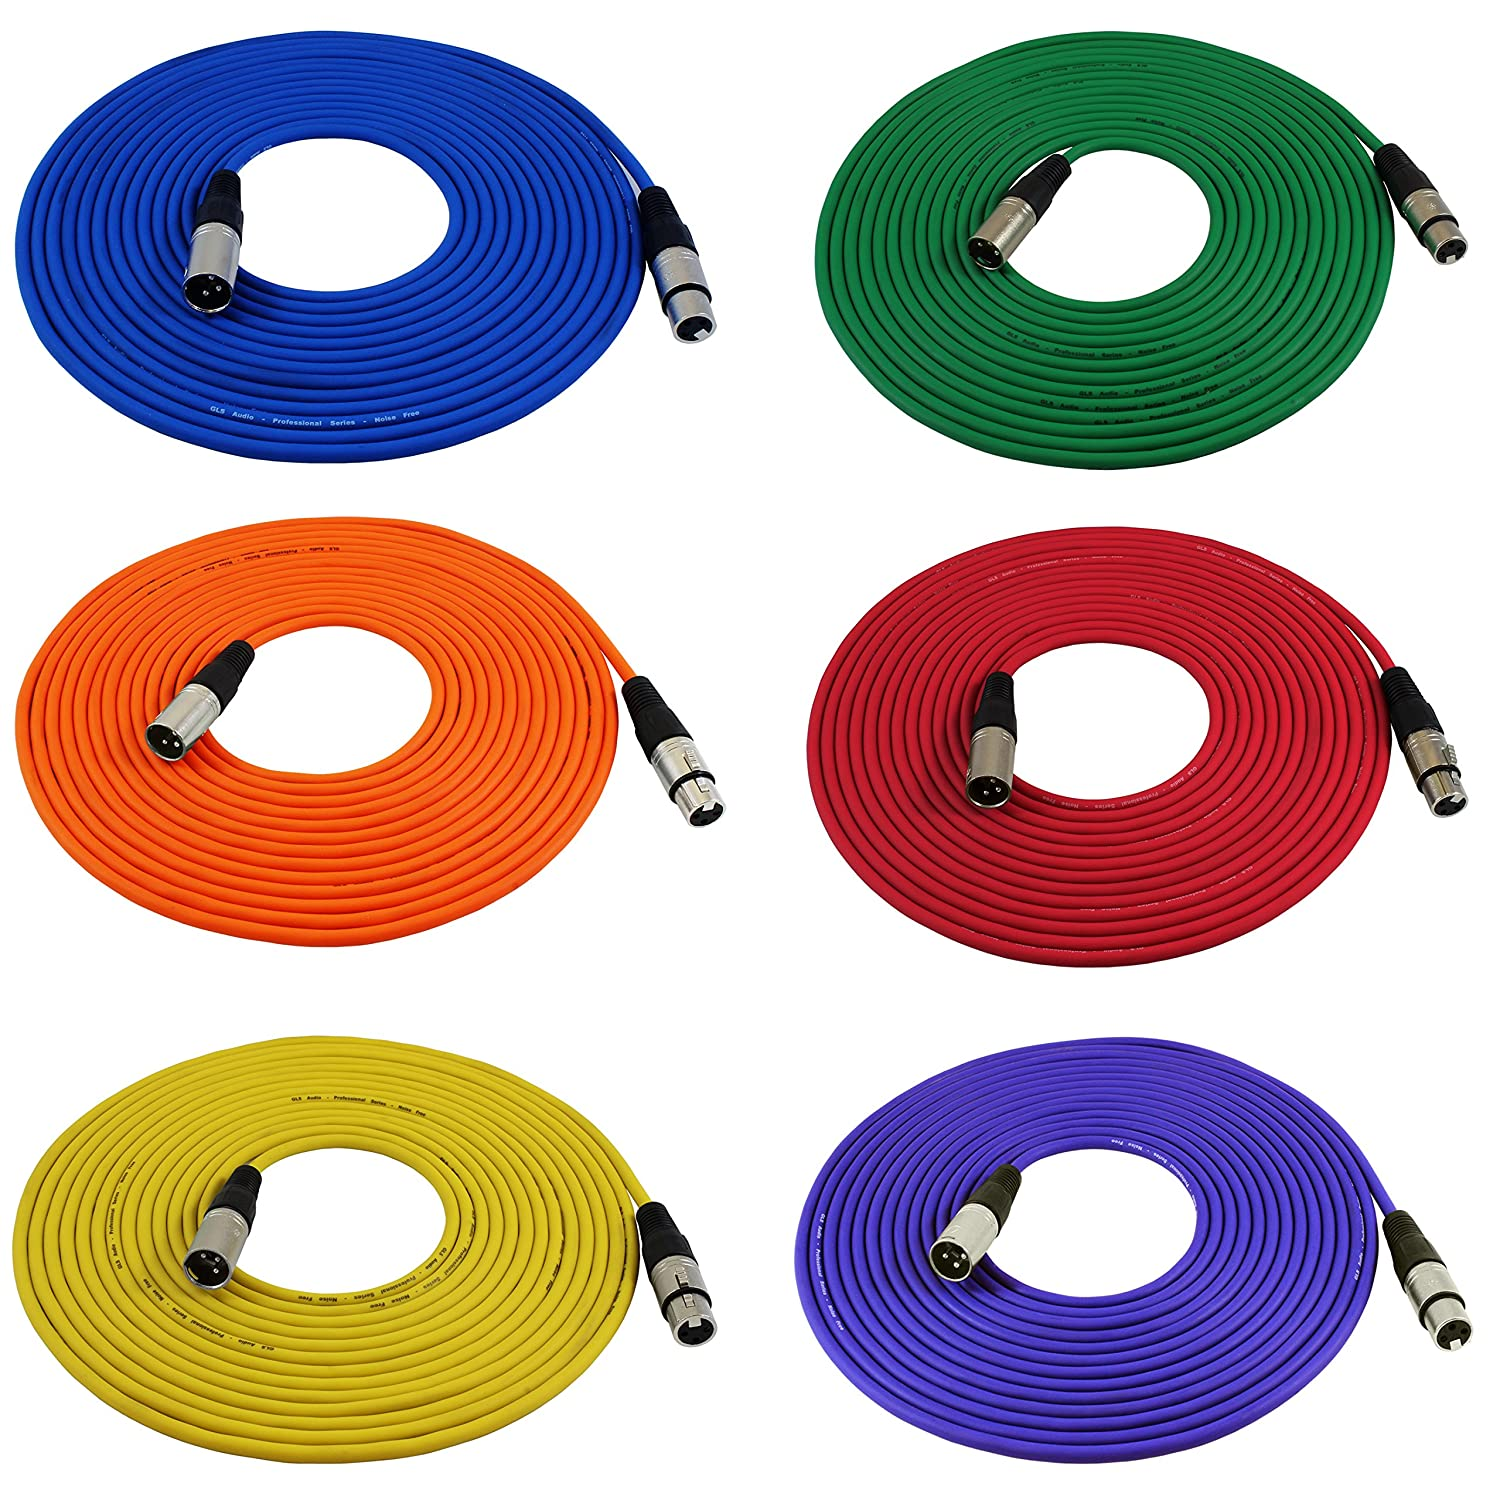 GLS Audio 25ft Mic Cable Cords - XLR Male to XLR Female Colored Cables - 25' Balanced Mike Cord - 6 PACK 6P25